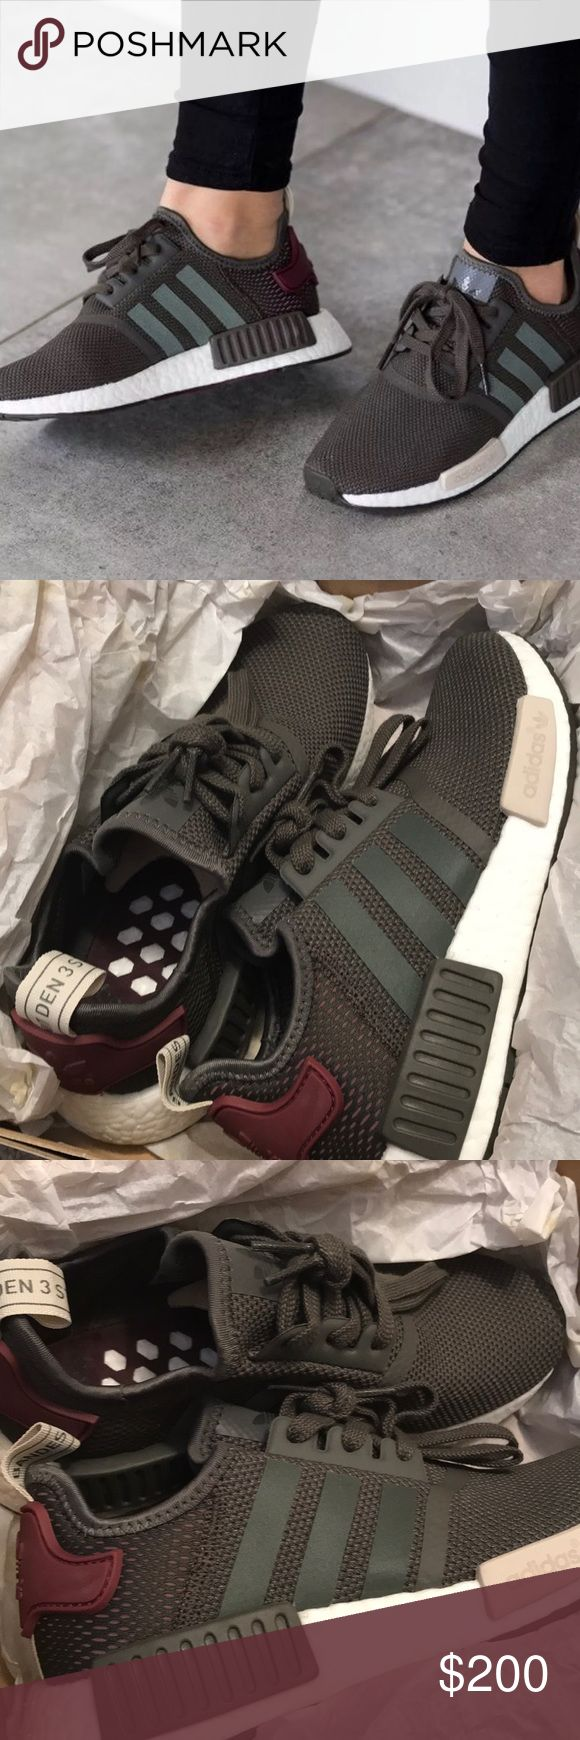 • size 6 • New  adidas NMD R1 W Utility green • New with box 100% authentic    Size 6  NMD R1 W Utility green and burgundy Price firm , color sold out  Lowballs will be blocked, thank you! •   •• no trades •• adidas Shoes Athletic Shoes